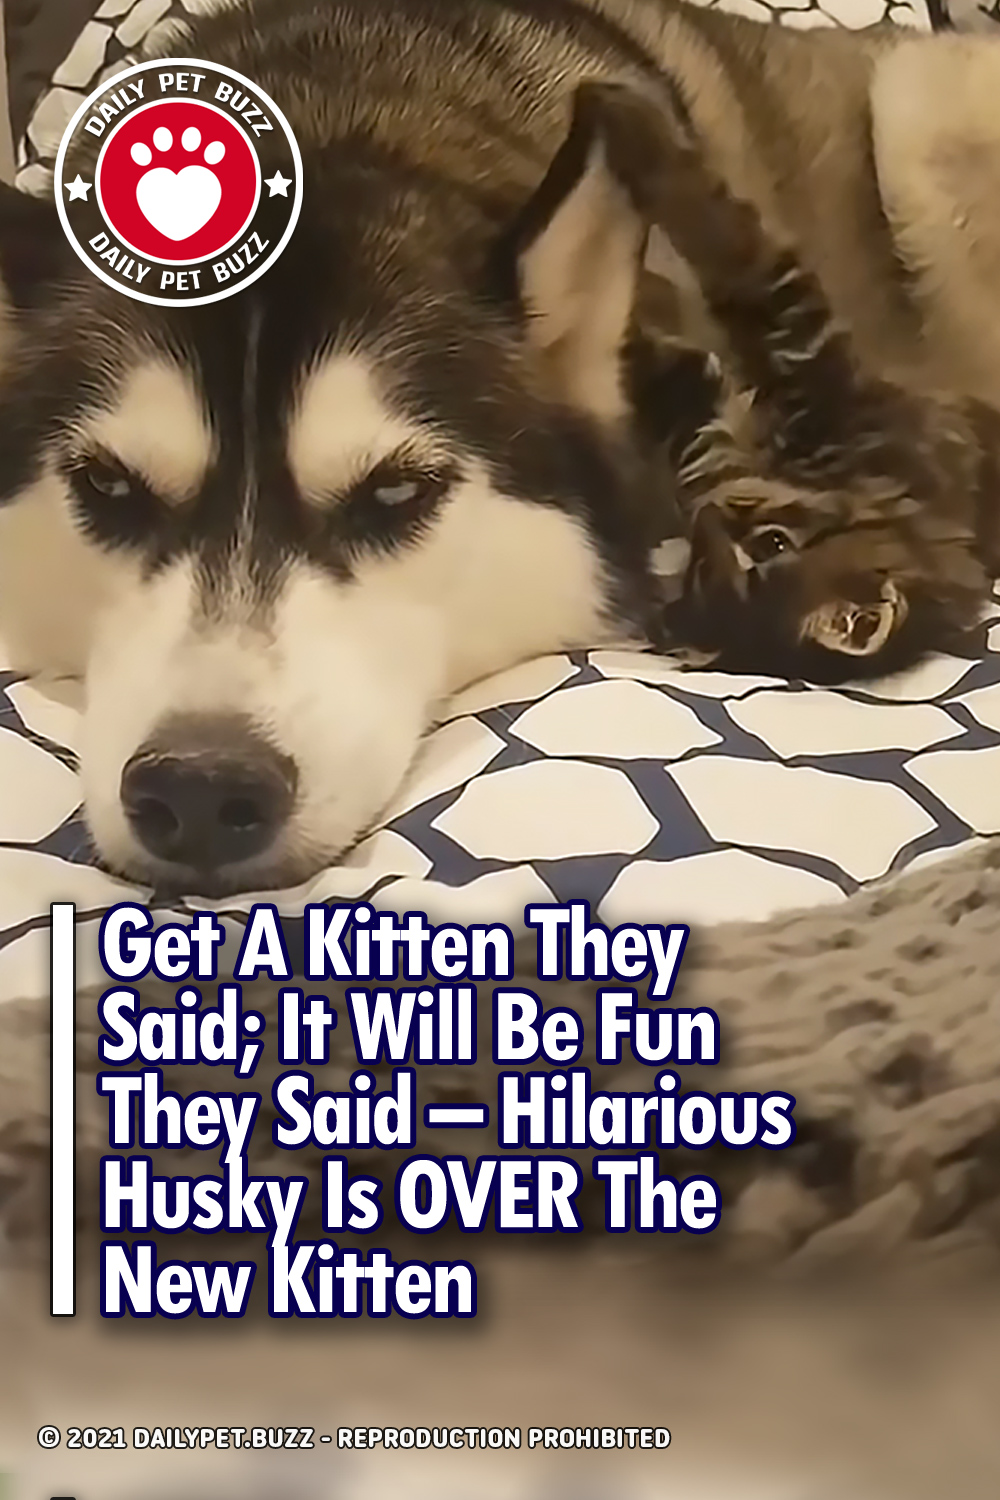 Get A Kitten They Said; It Will Be Fun They Said – Hilarious Husky Is OVER The New Kitten